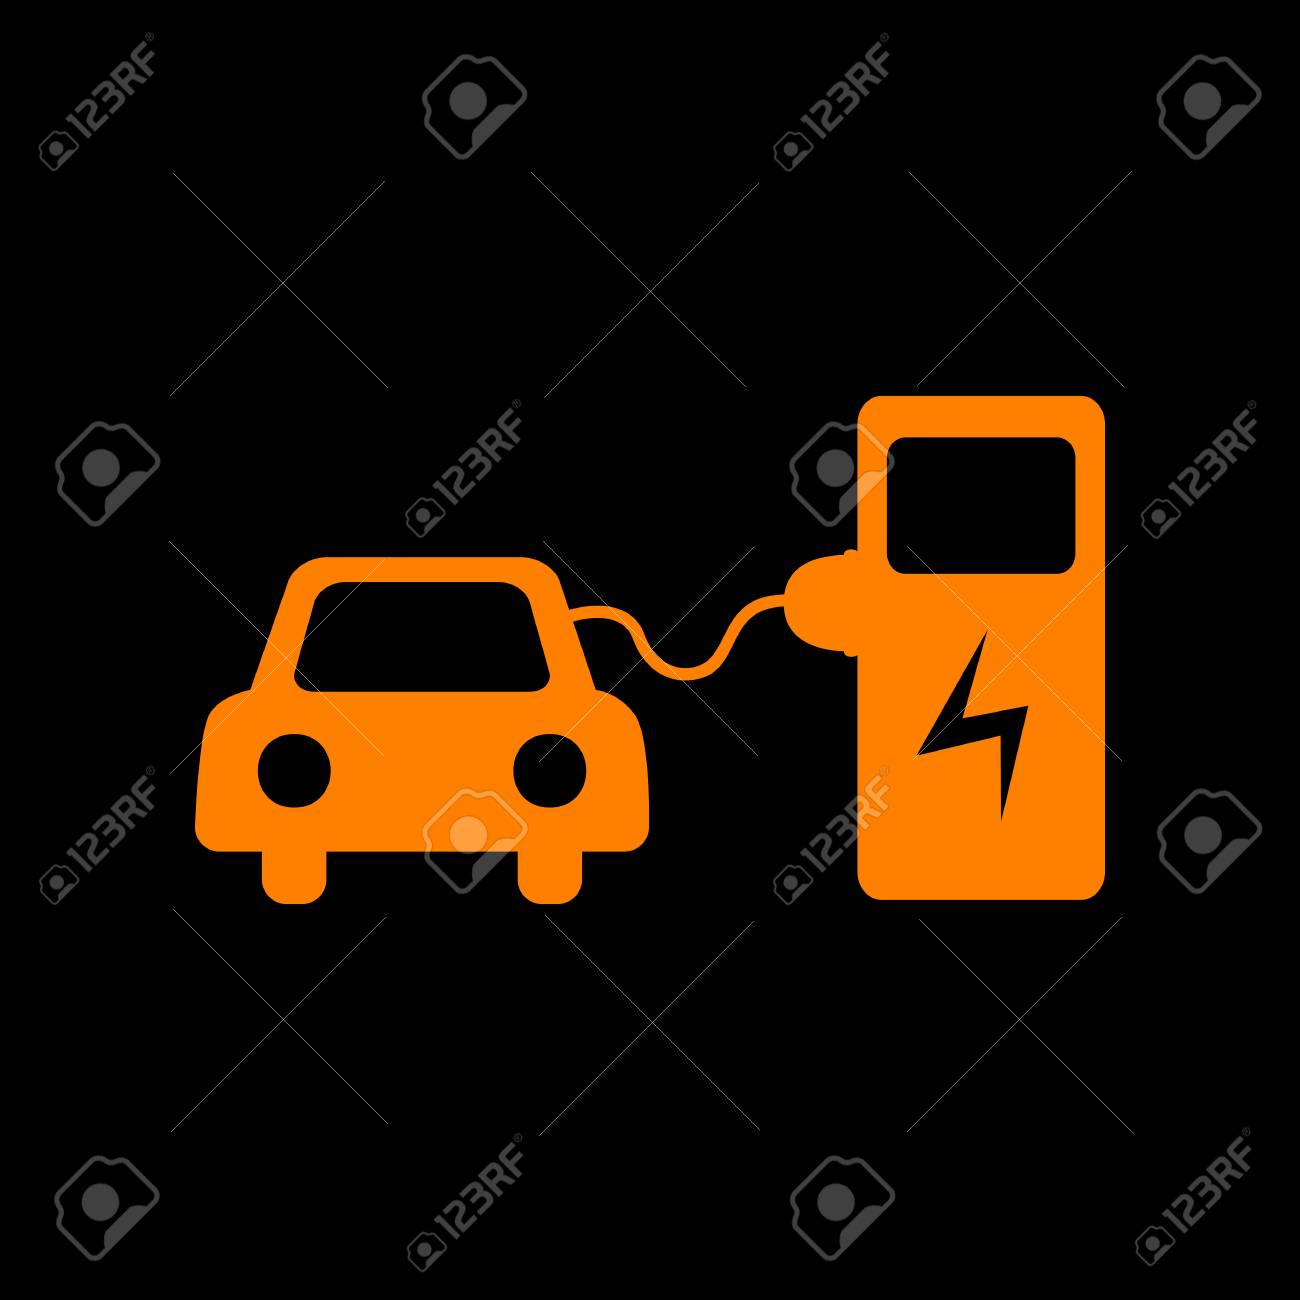 hight resolution of electric car battery charging sign orange icon on black background old phosphor monitor